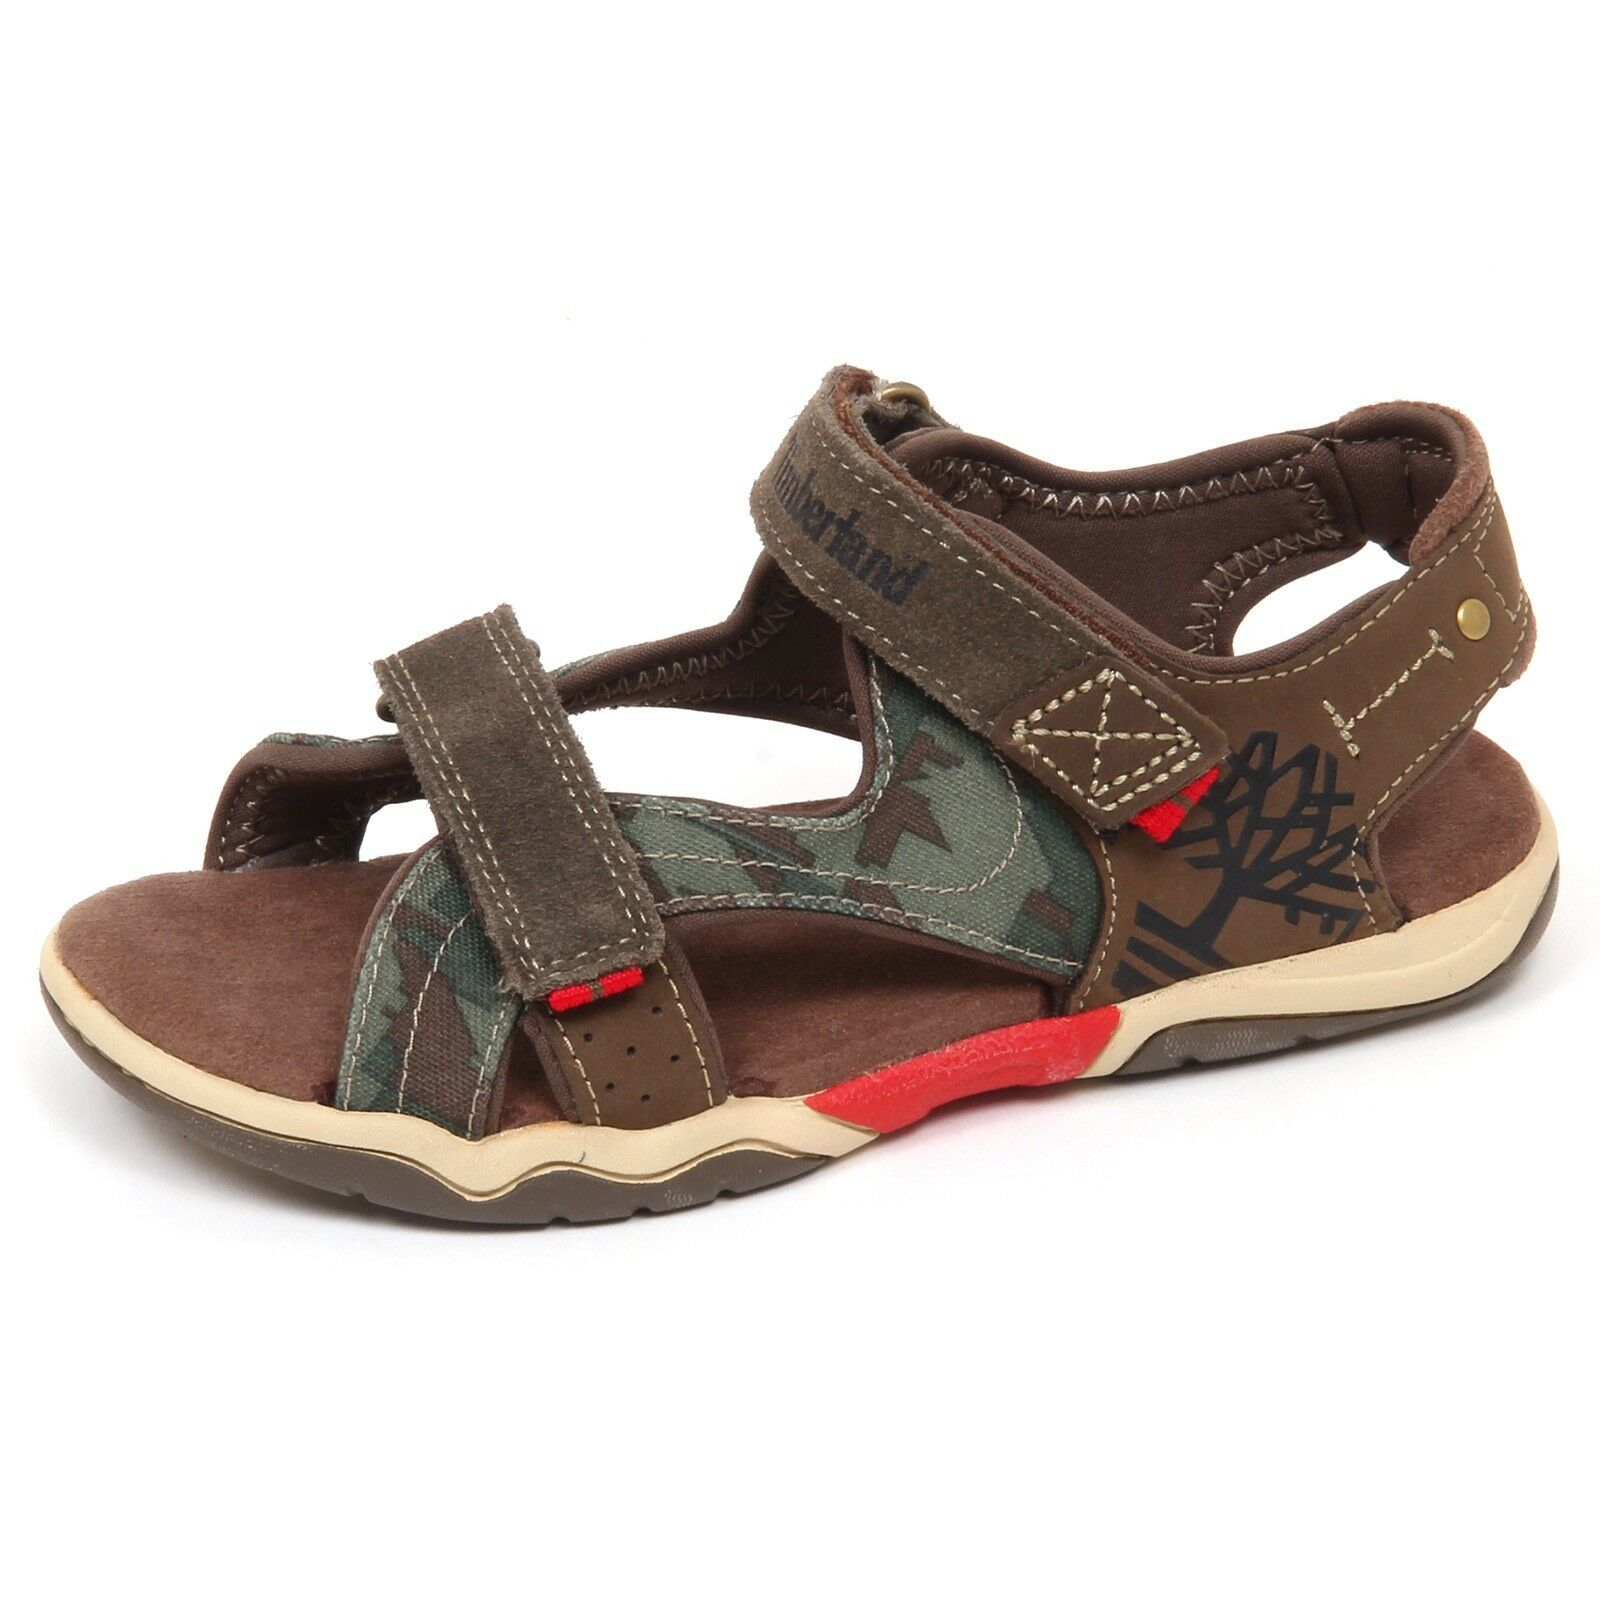 E6332 sandalo bimbo brown/green TIMBERLAND scarpe shoe baby kid boy